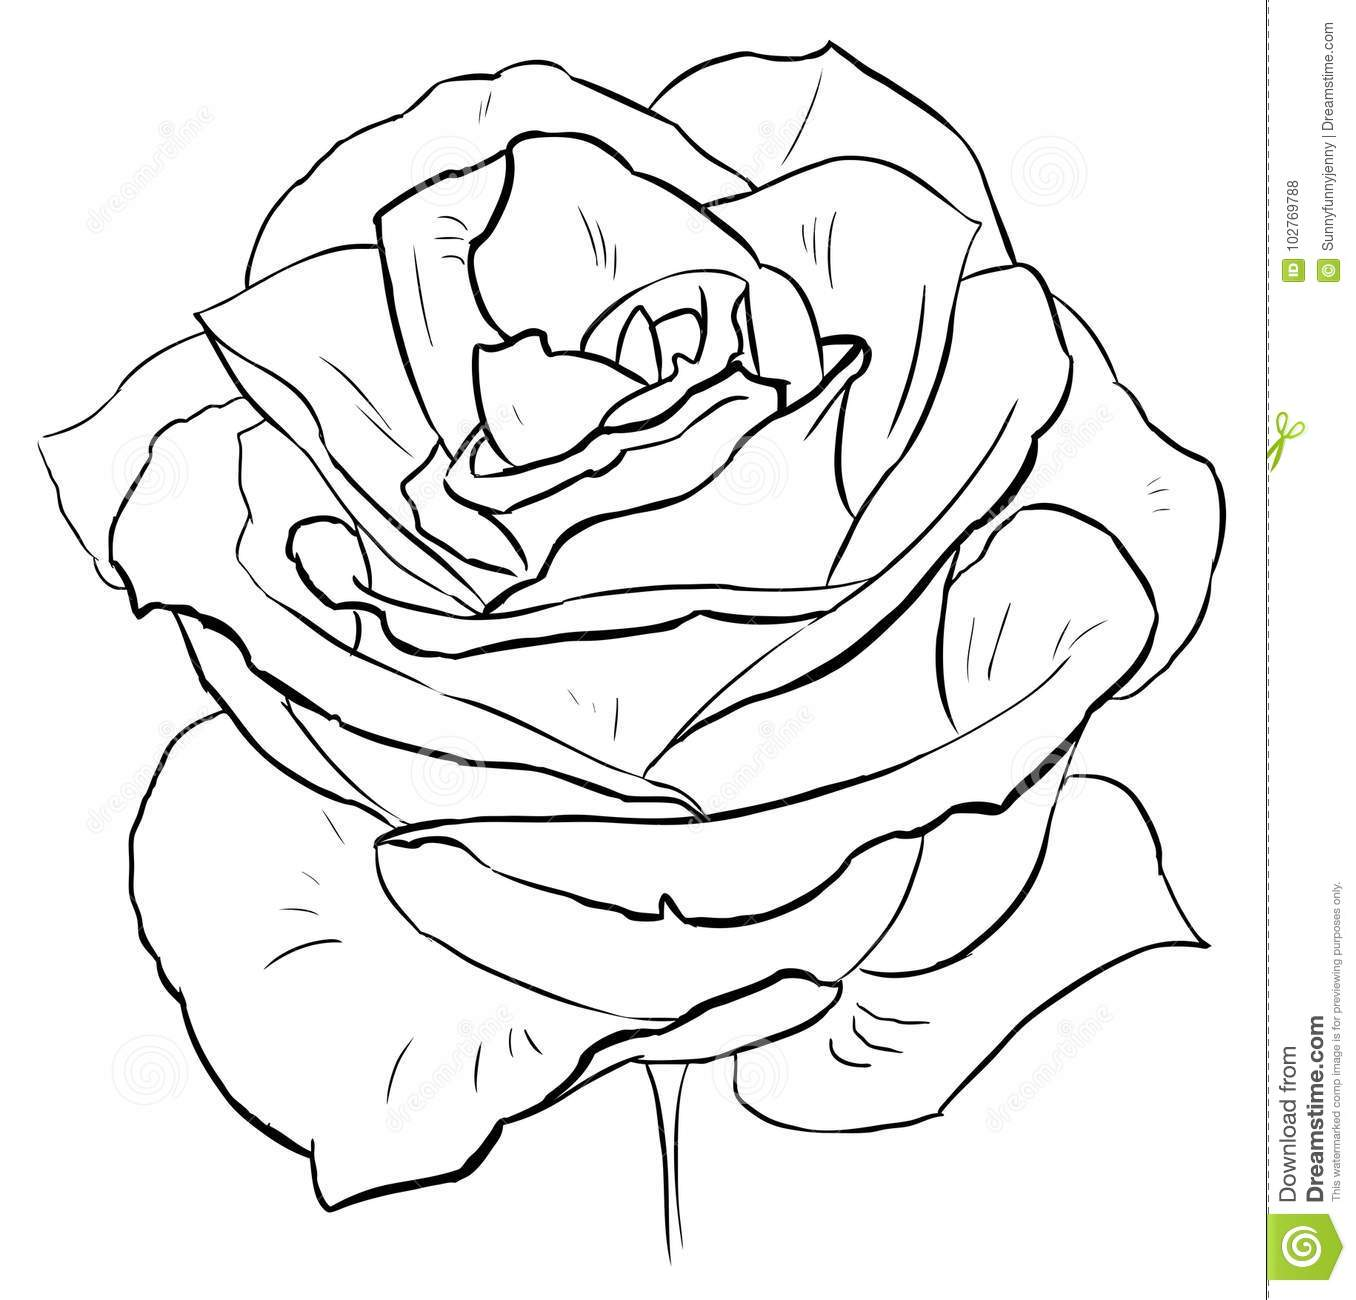 Flower Petals Page 11 Coloring Pages